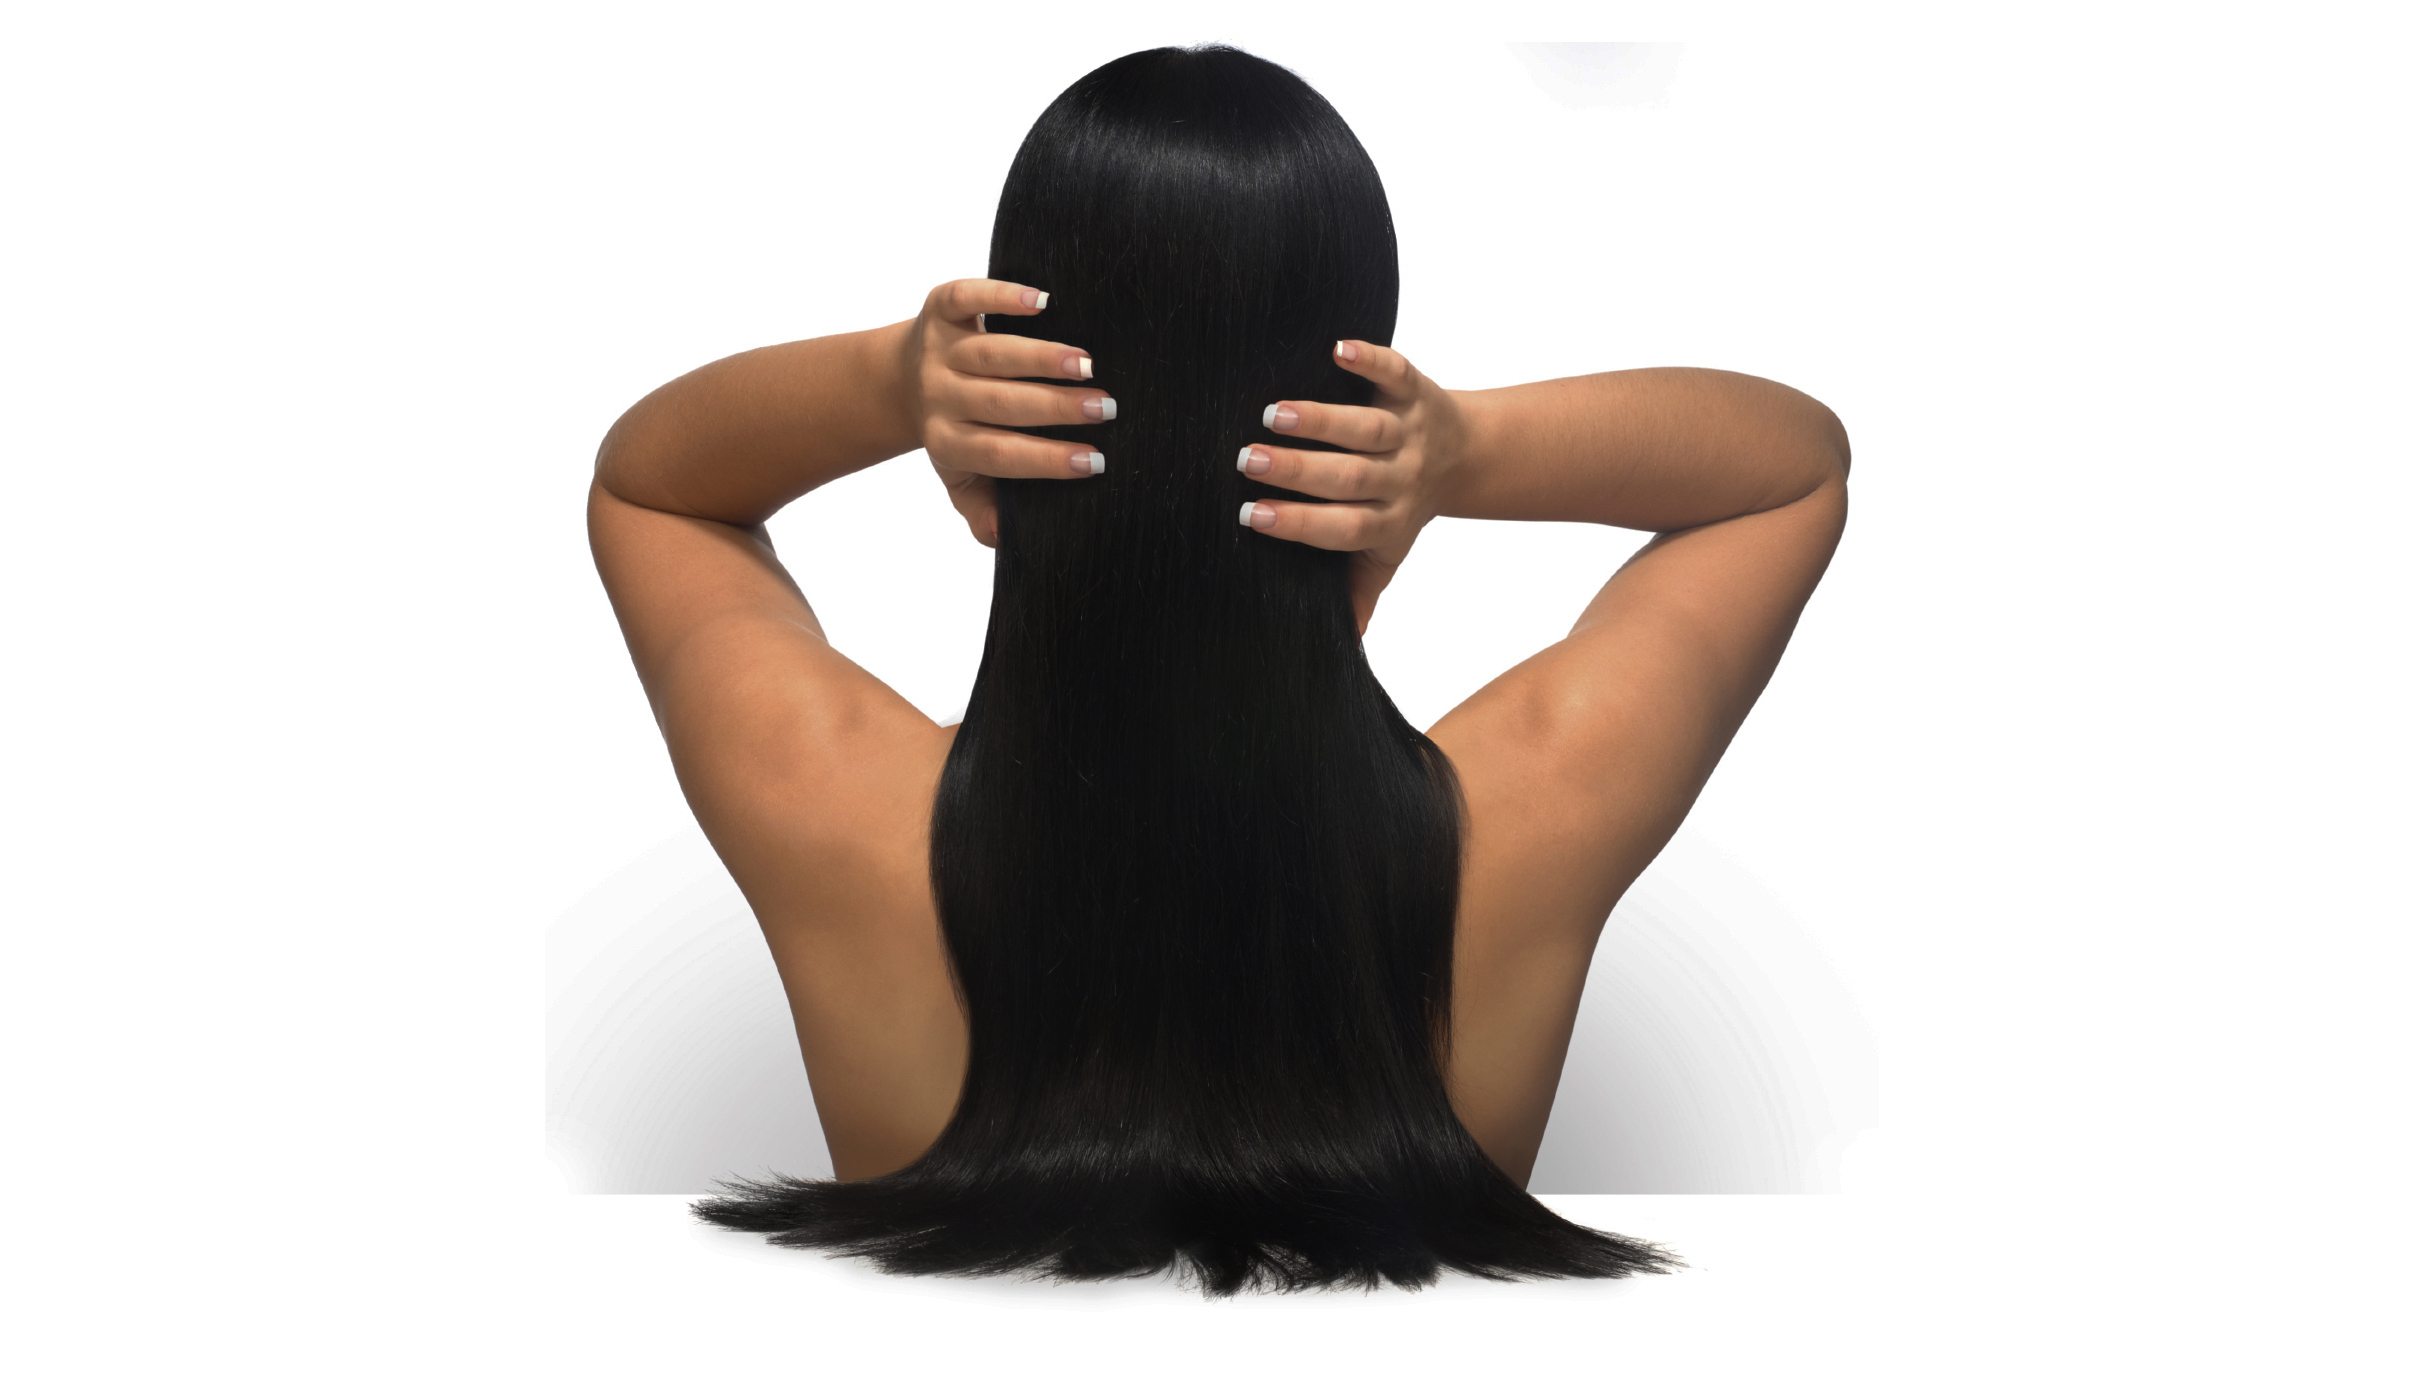 Where Does Hair Extension Hair Come From?